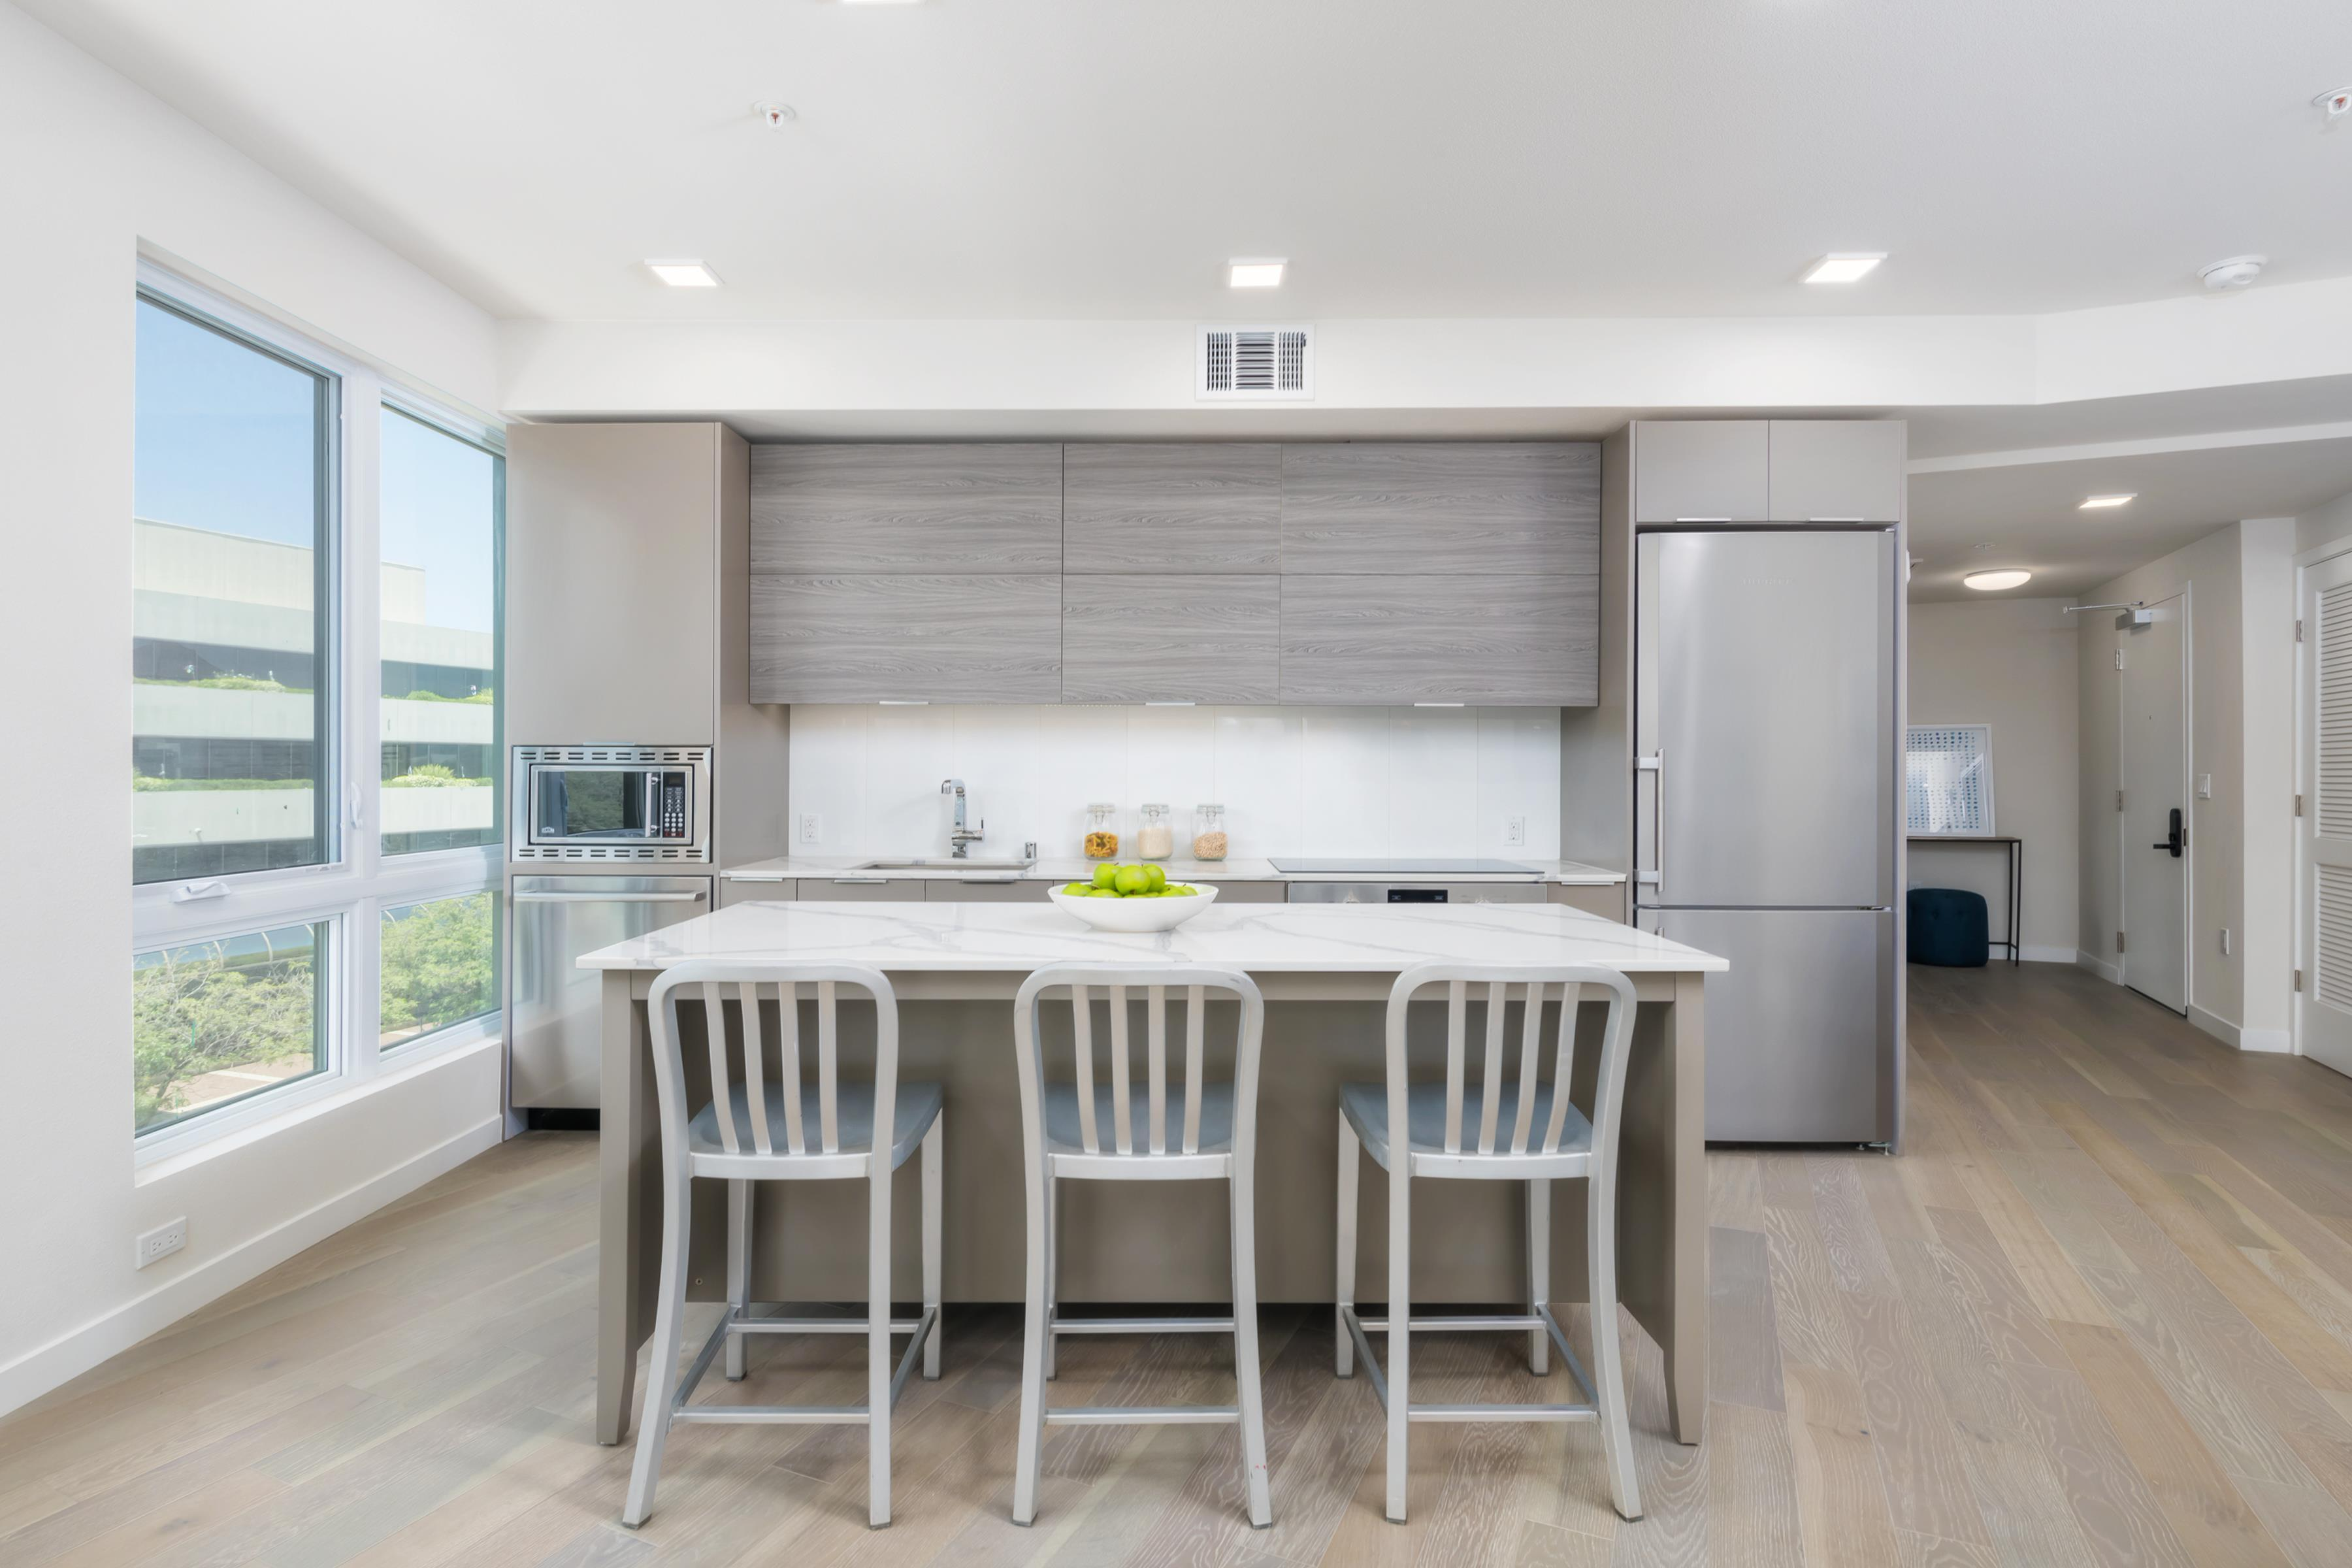 Kitchen featured in the 1b By The Address Company in Oakland-Alameda, CA